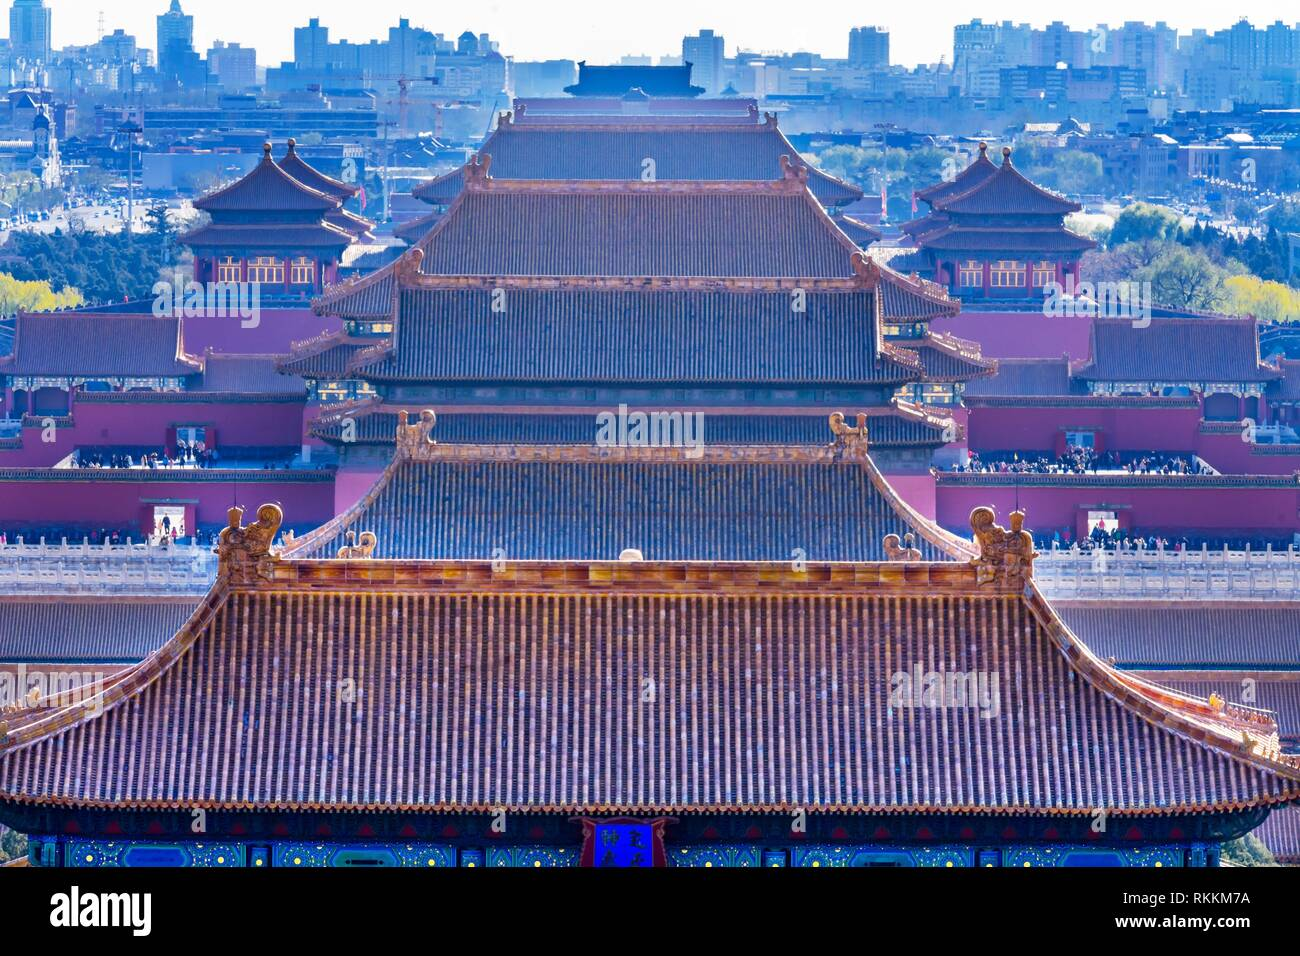 Yellow Roofs Forbidden City Beijing China Taken from Jinshang Park looking towards Tiananmen Square.Trademarks removed. - Stock Image